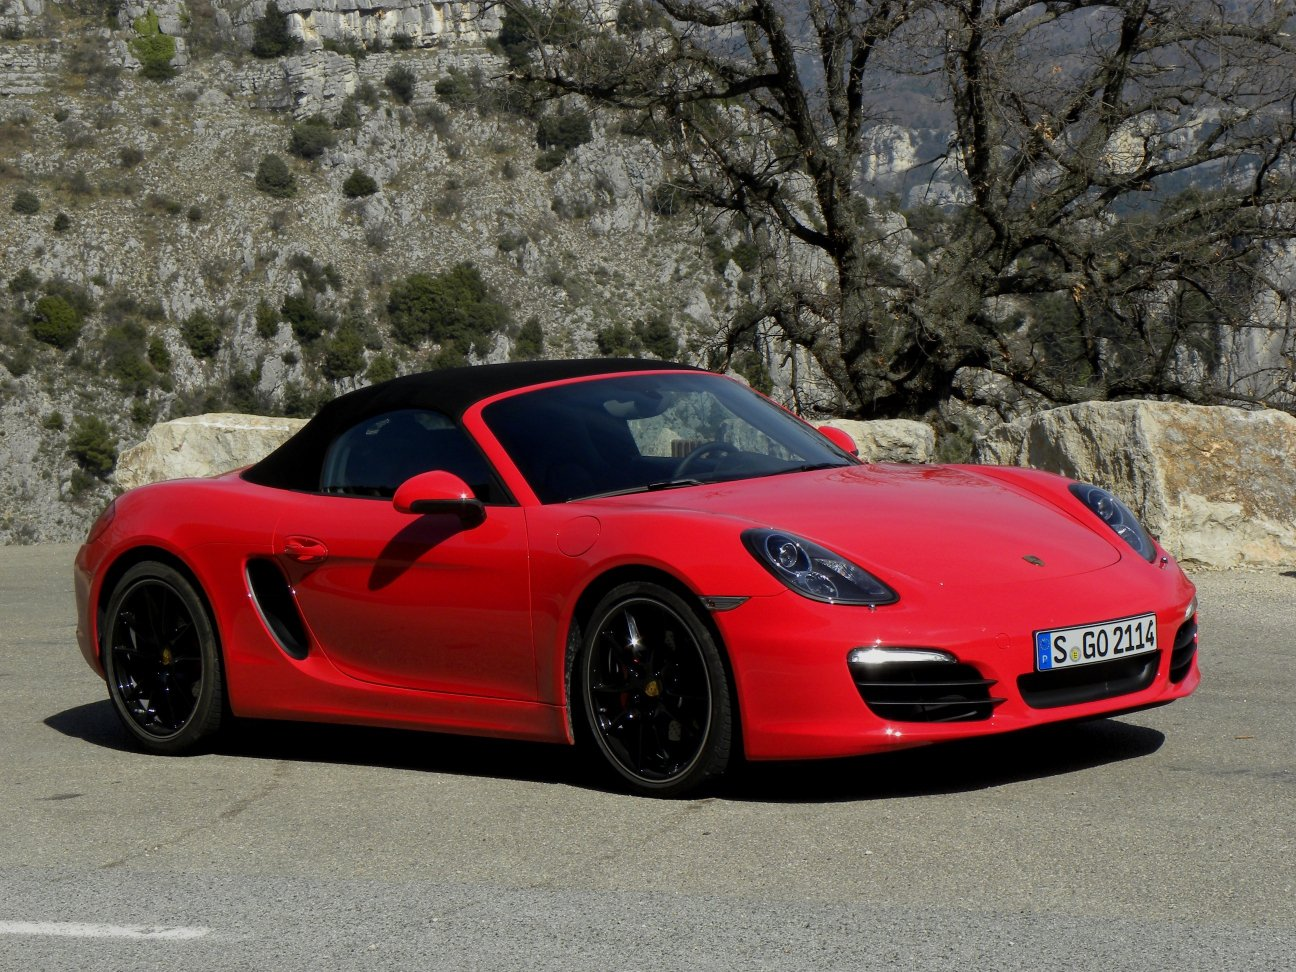 2019 Porsche Boxster photo - 3